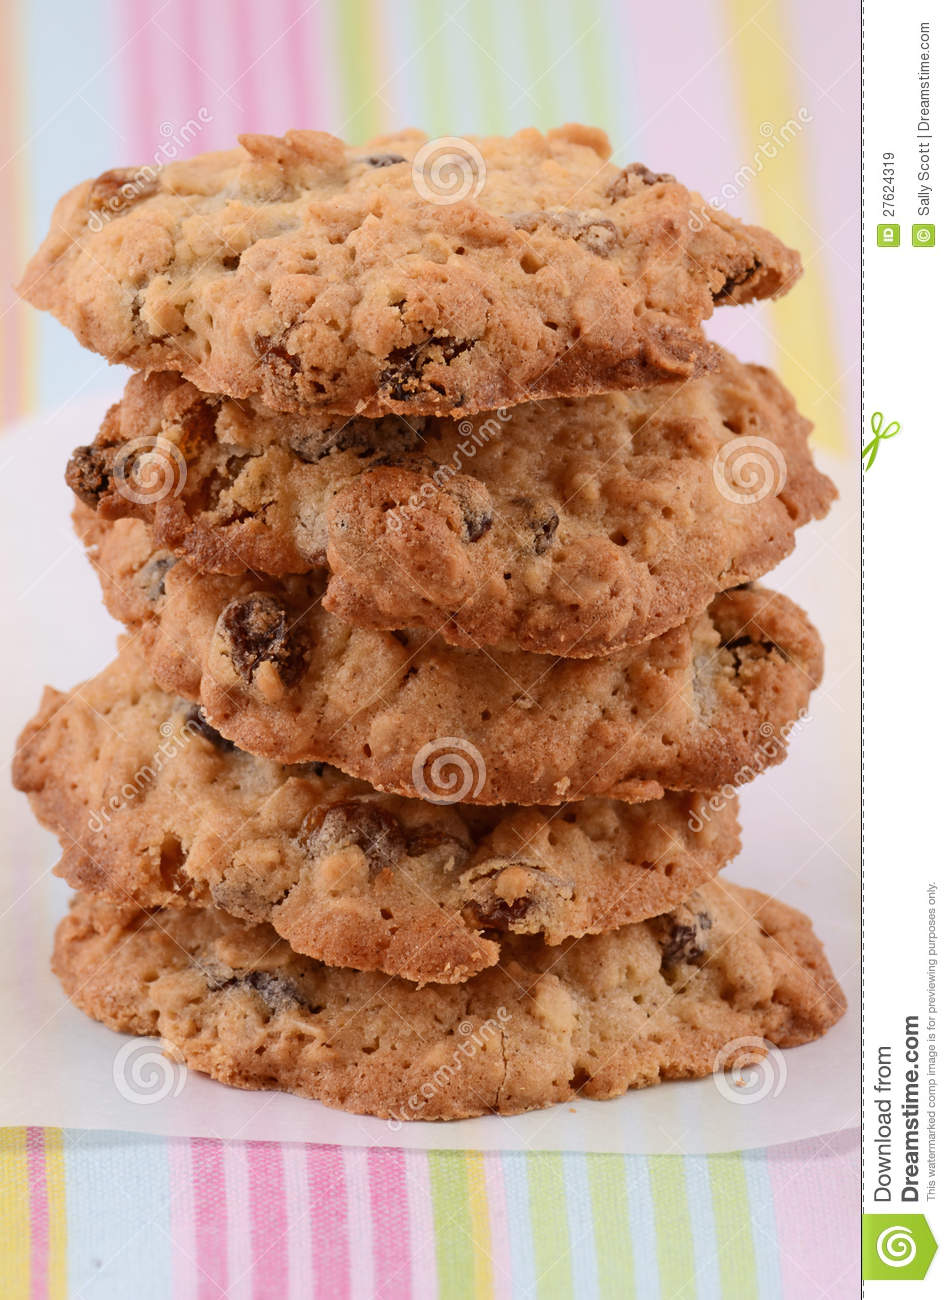 fresh baked cookies royalty free stock images image